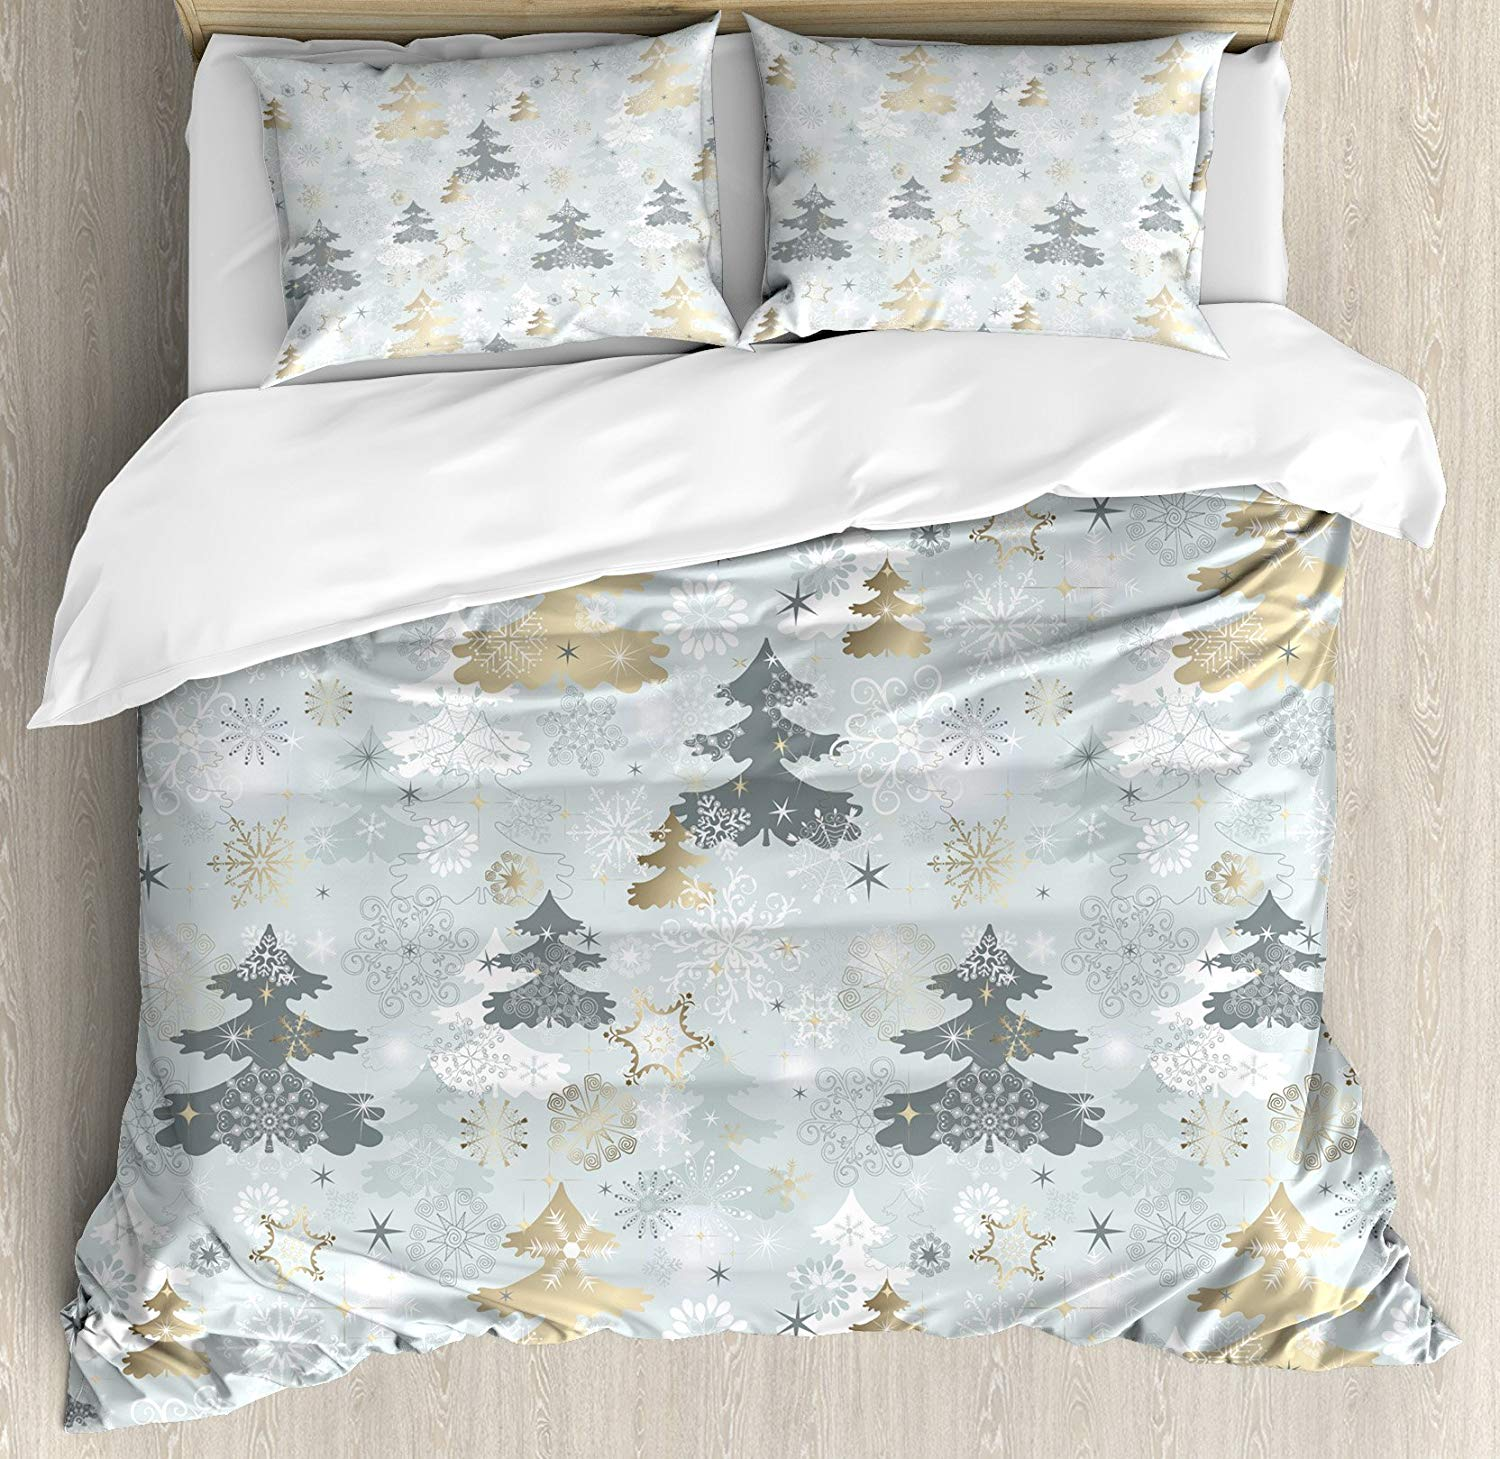 Ambesonne Retro Pine Christmas Duvet Cover Set - Buy Christmas Duvet Covers